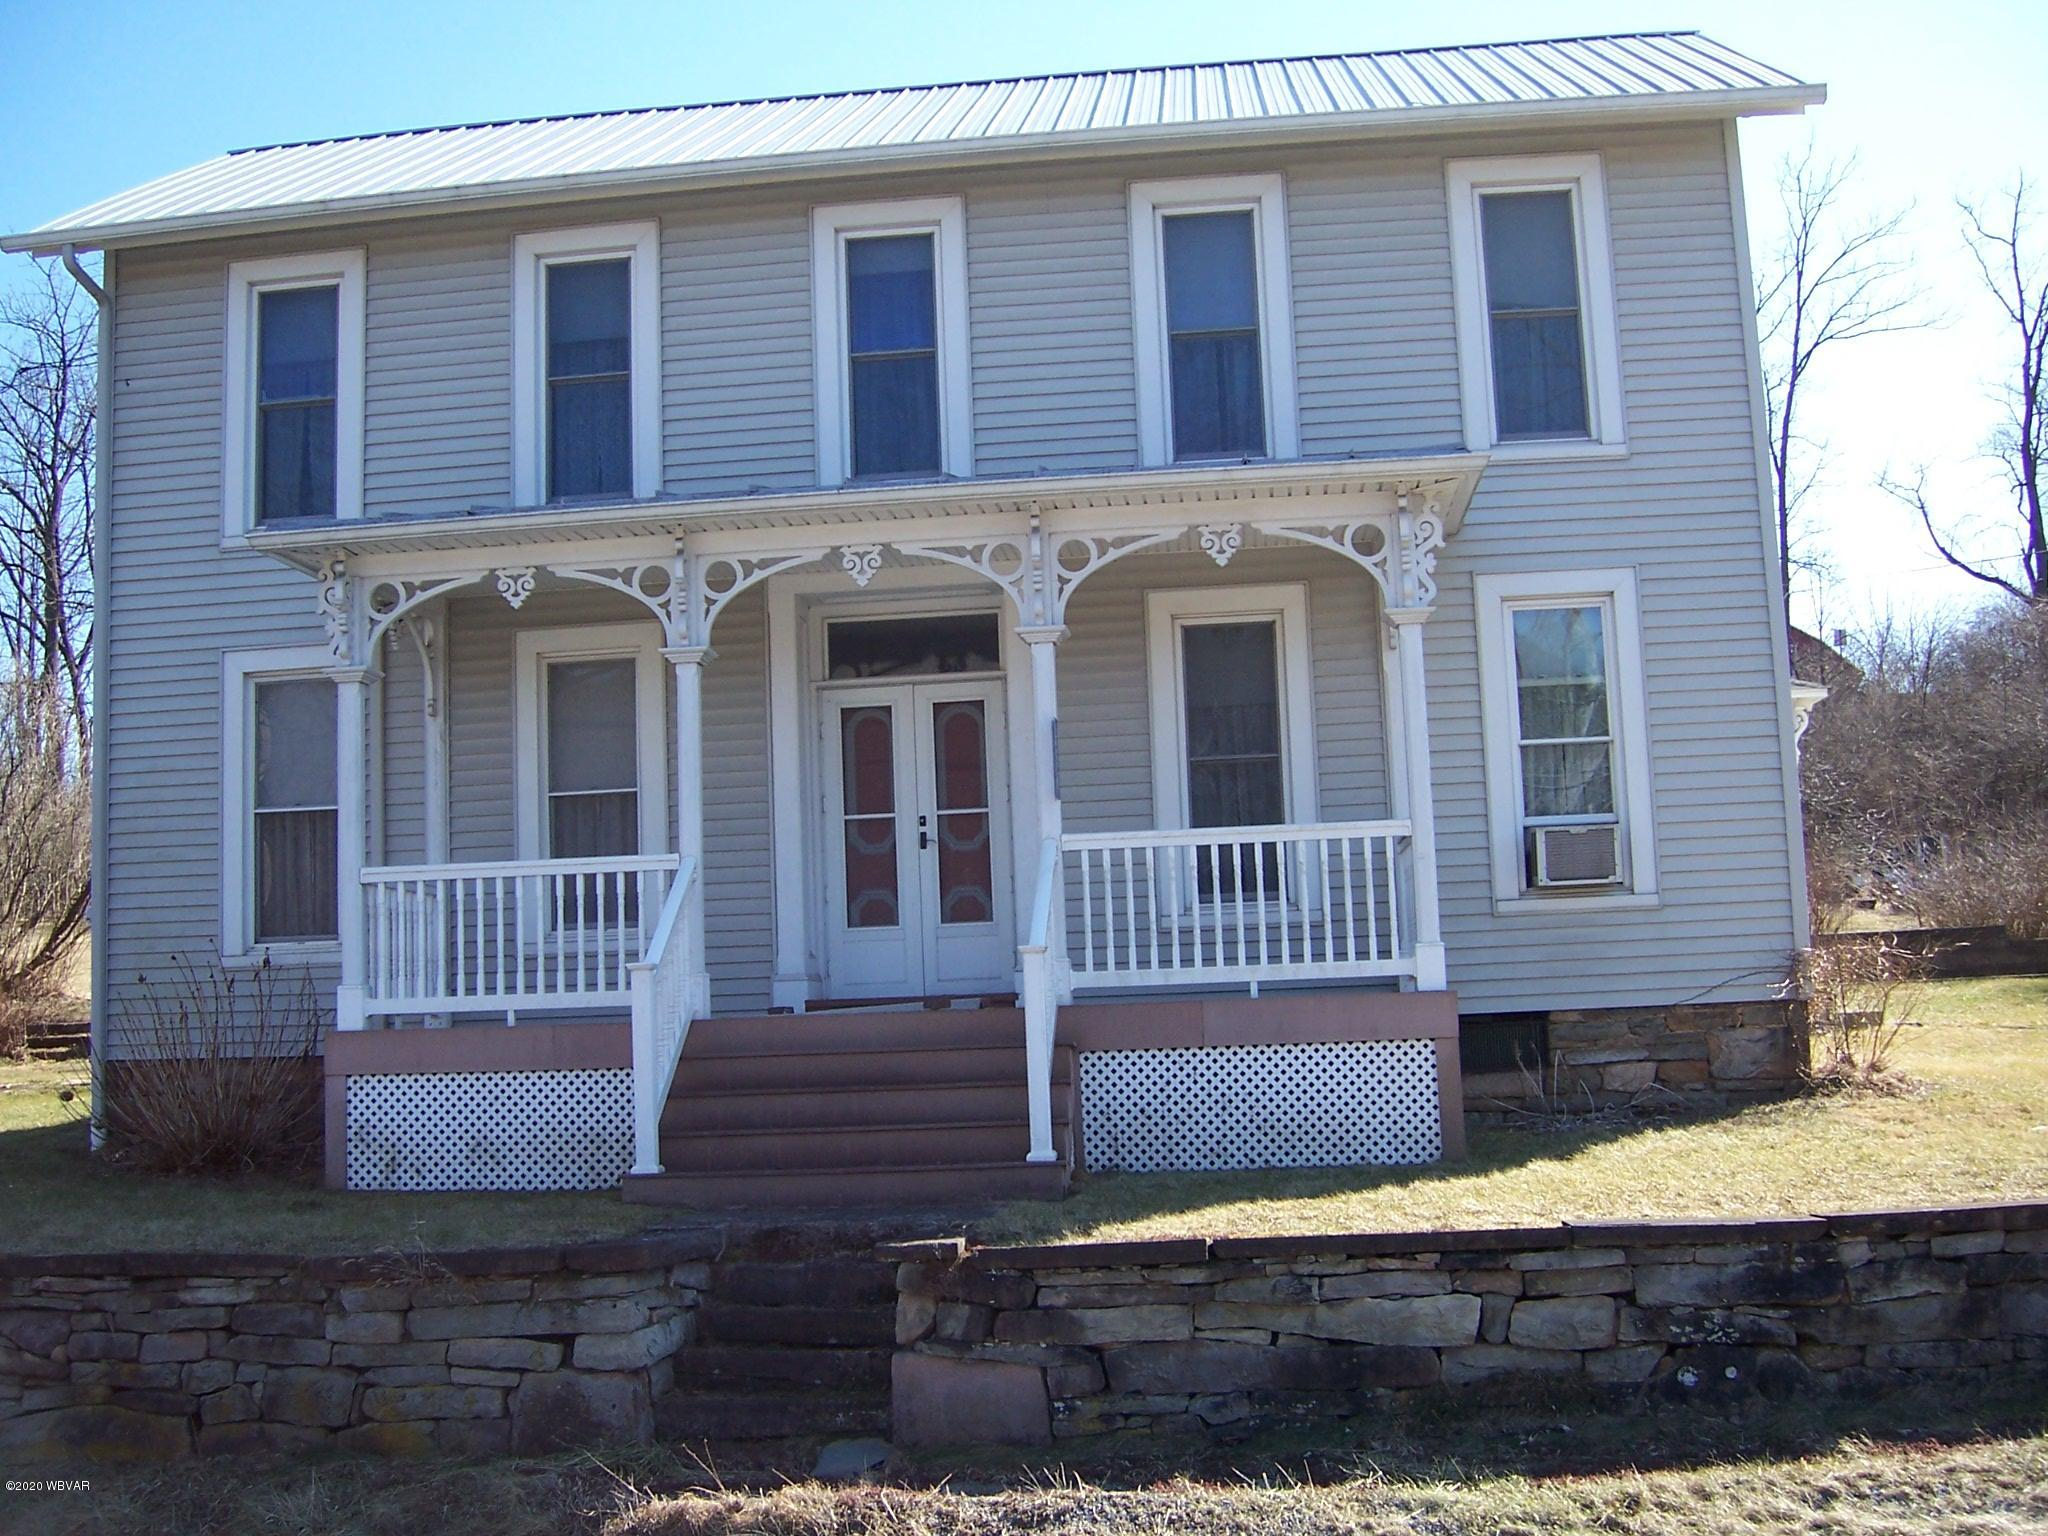 636 LONG RUN ROAD, Mill Hall, PA 17751, 4 Bedrooms Bedrooms, ,1 BathroomBathrooms,Residential,For sale,LONG RUN,WB-90306